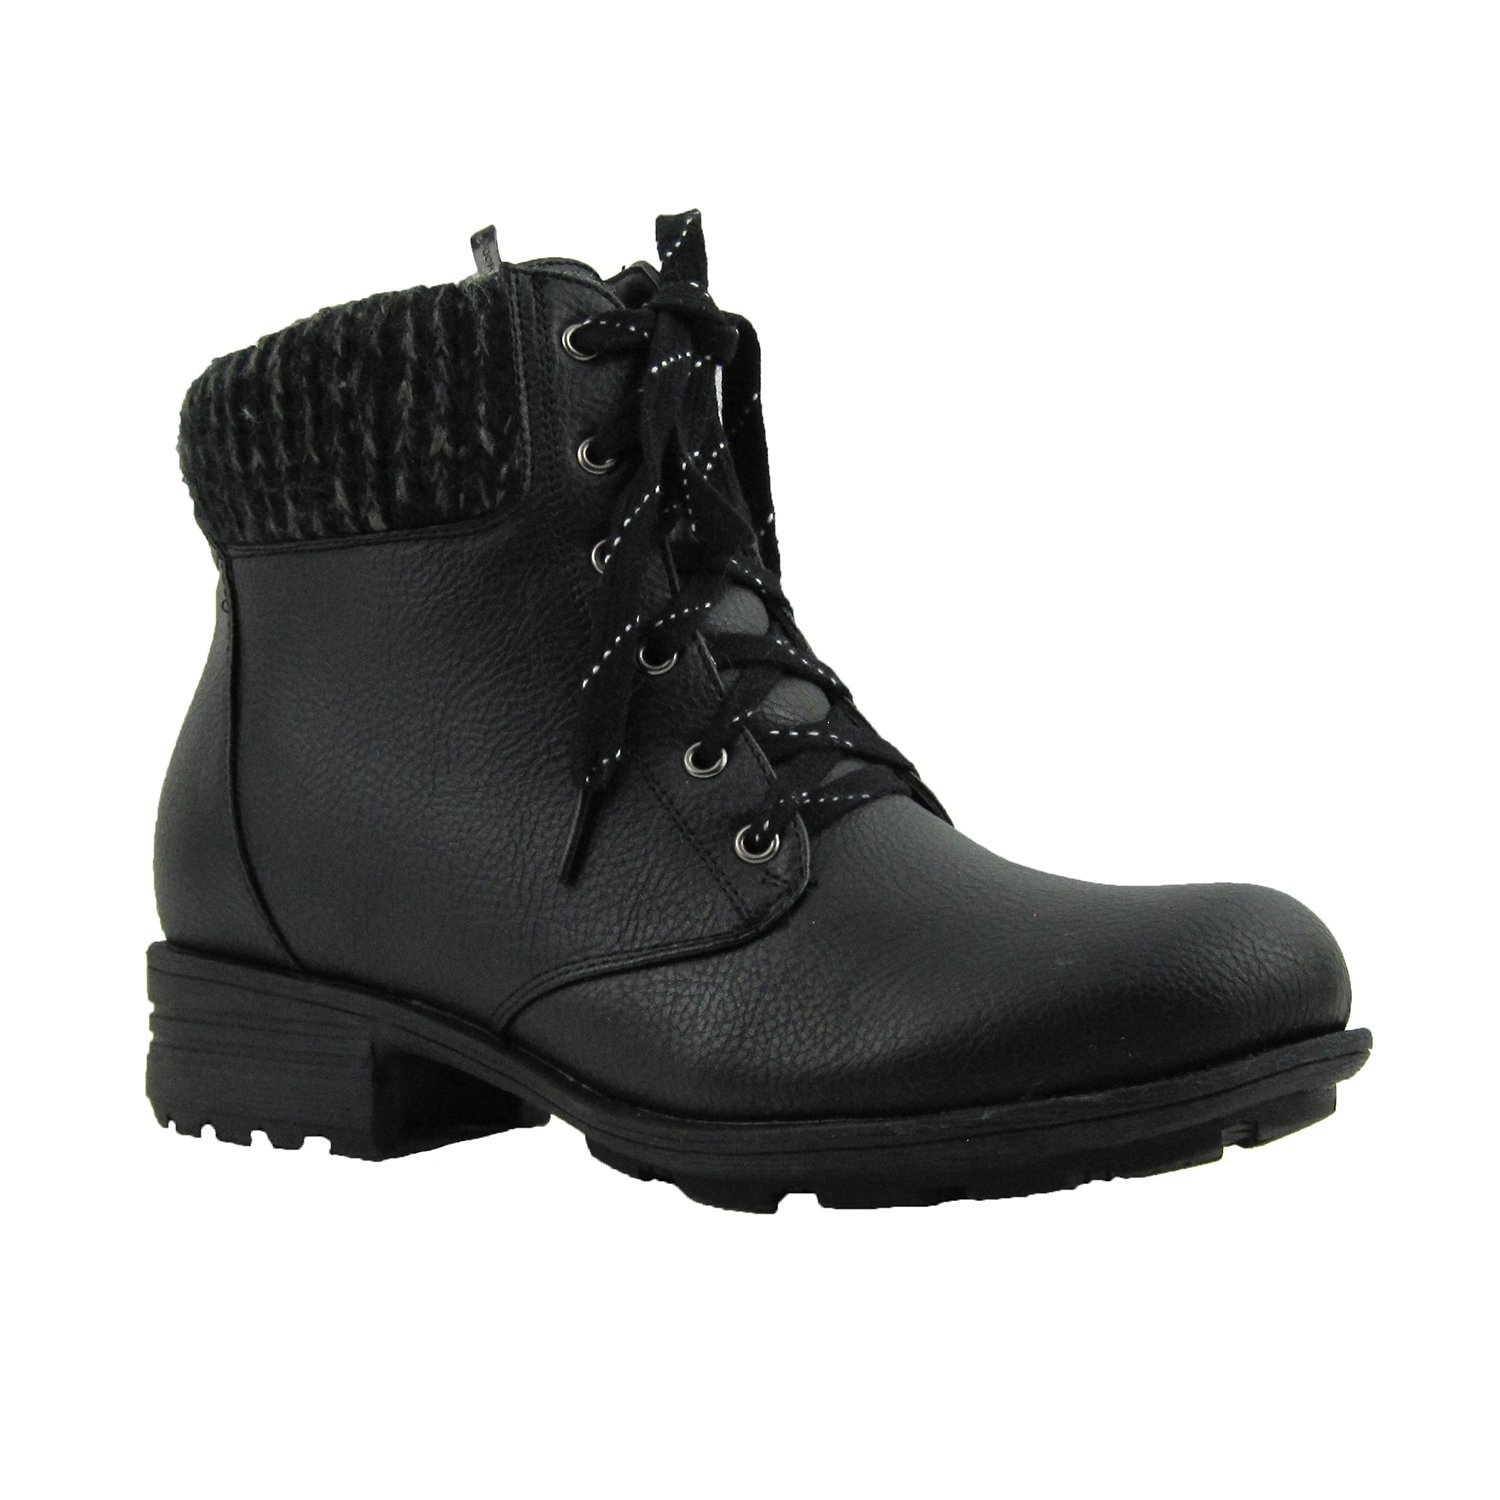 676fa0a2888 Cheap Wide Fitting Safety Boots, find Wide Fitting Safety Boots ...